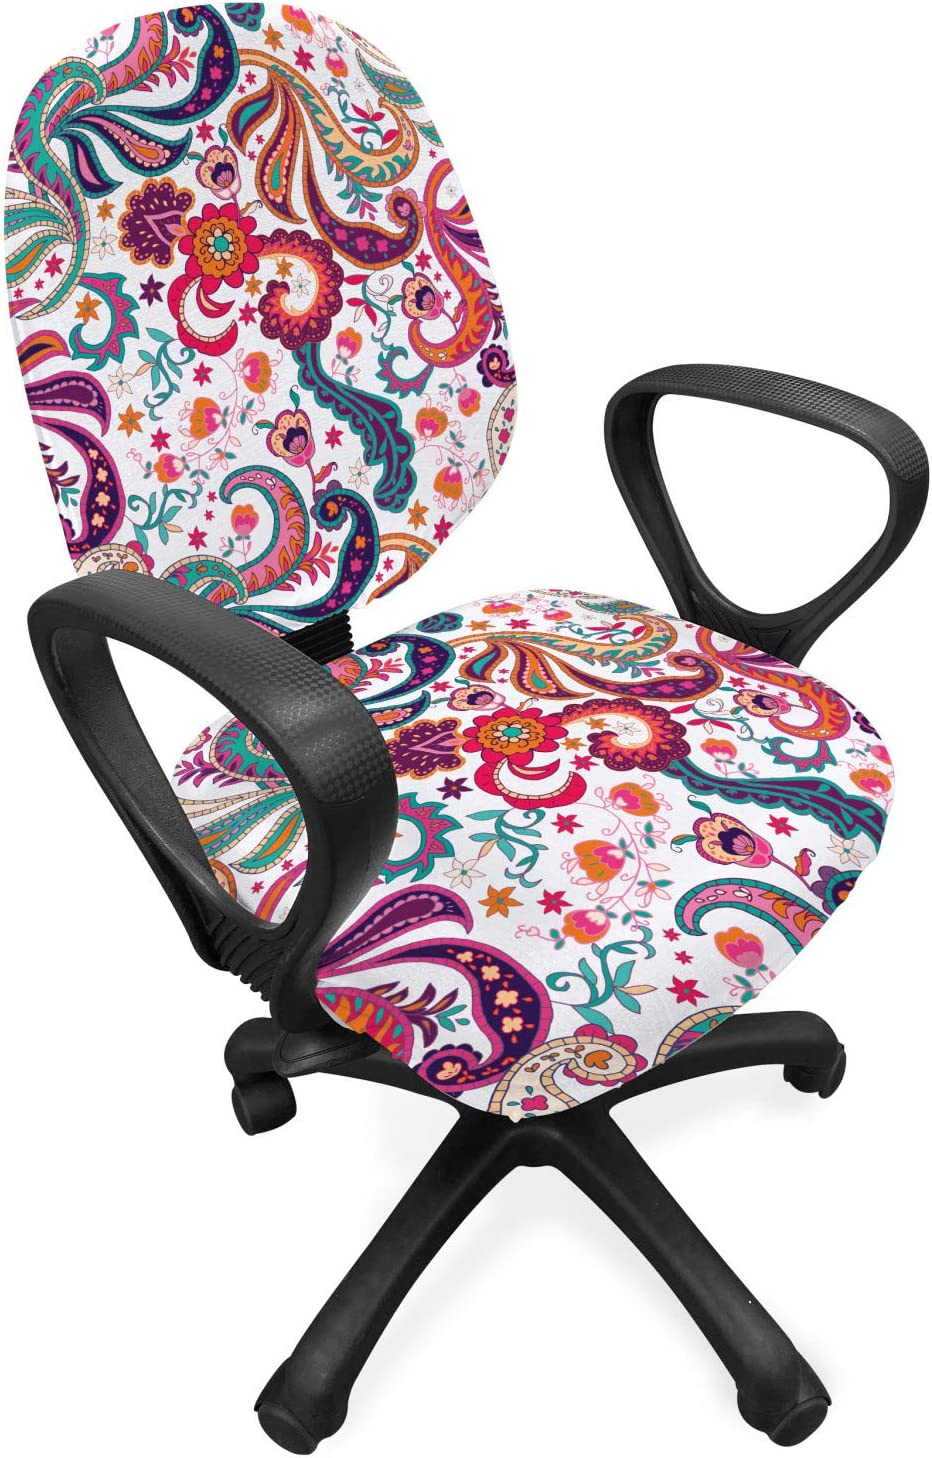 Lunarable Paisley Office Chair Slipcover, Paisley Hand Drawn Style Motif Colorful Flowers and Leaves in Vintage Colors Print, Protective Stretch Decorative Fabric Cover, Standard Size, Orange Teal